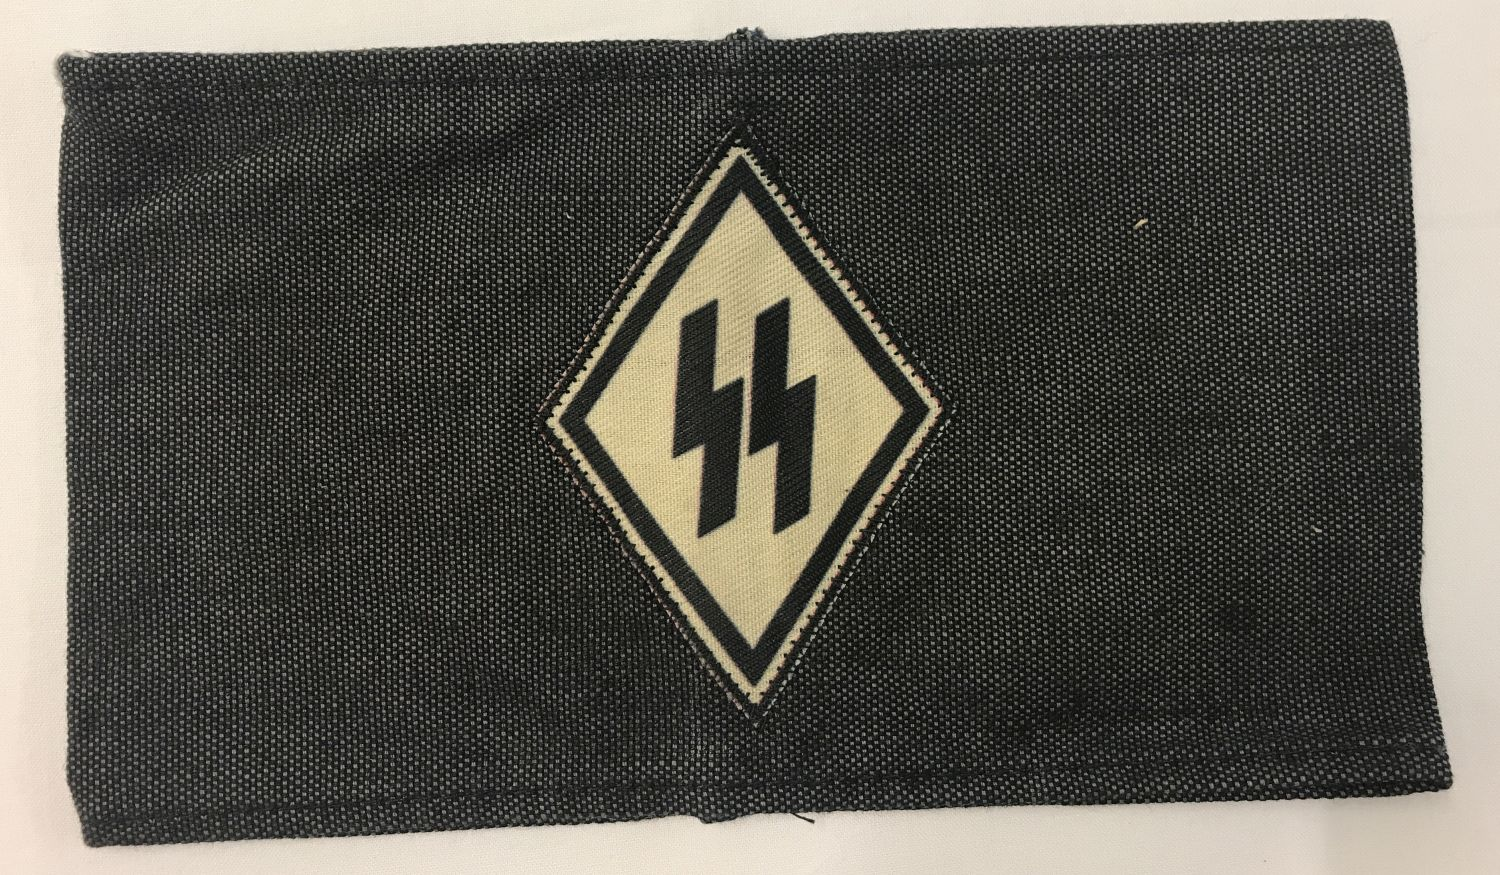 Lot 135 - A copy of a German WWII SS VT funeral mourner's armband.